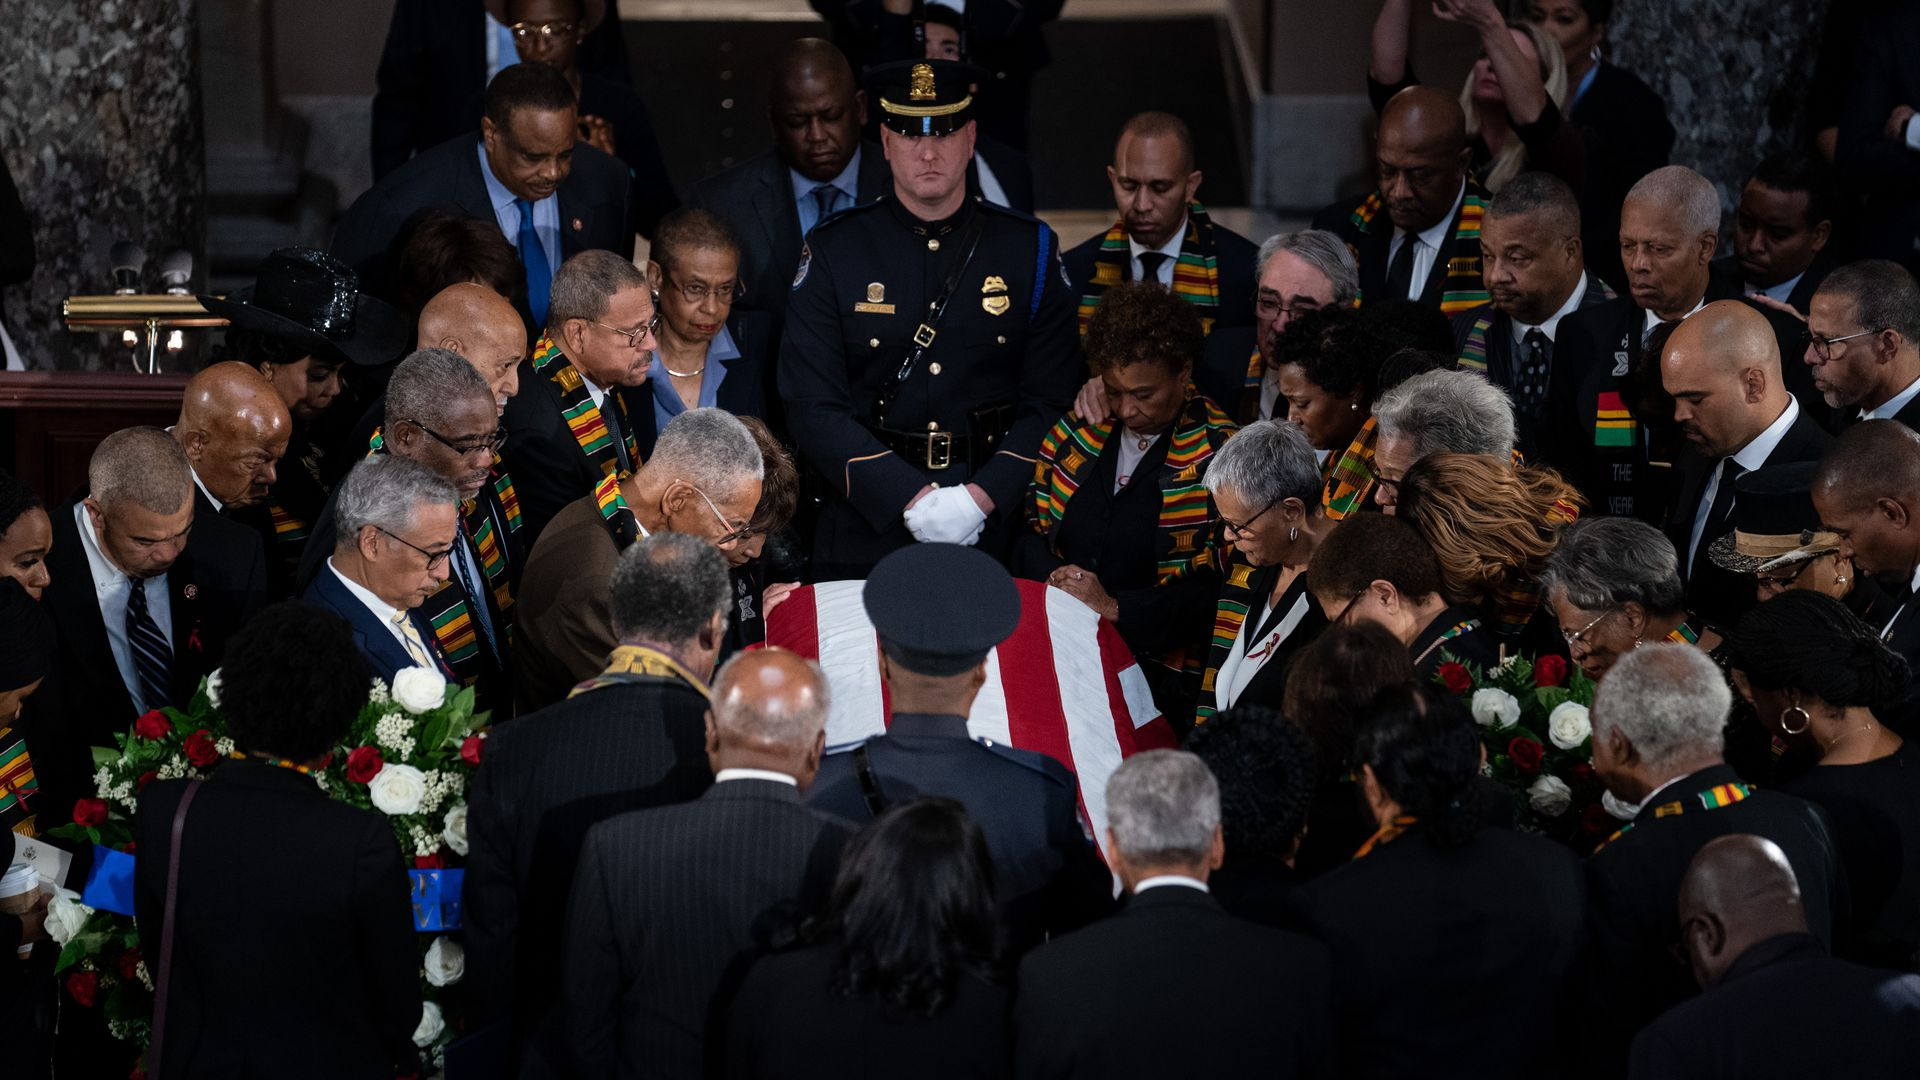 Members of the Congressional Black Caucus pray over the casket of Rep. Elijah Cummings (D-Md.)